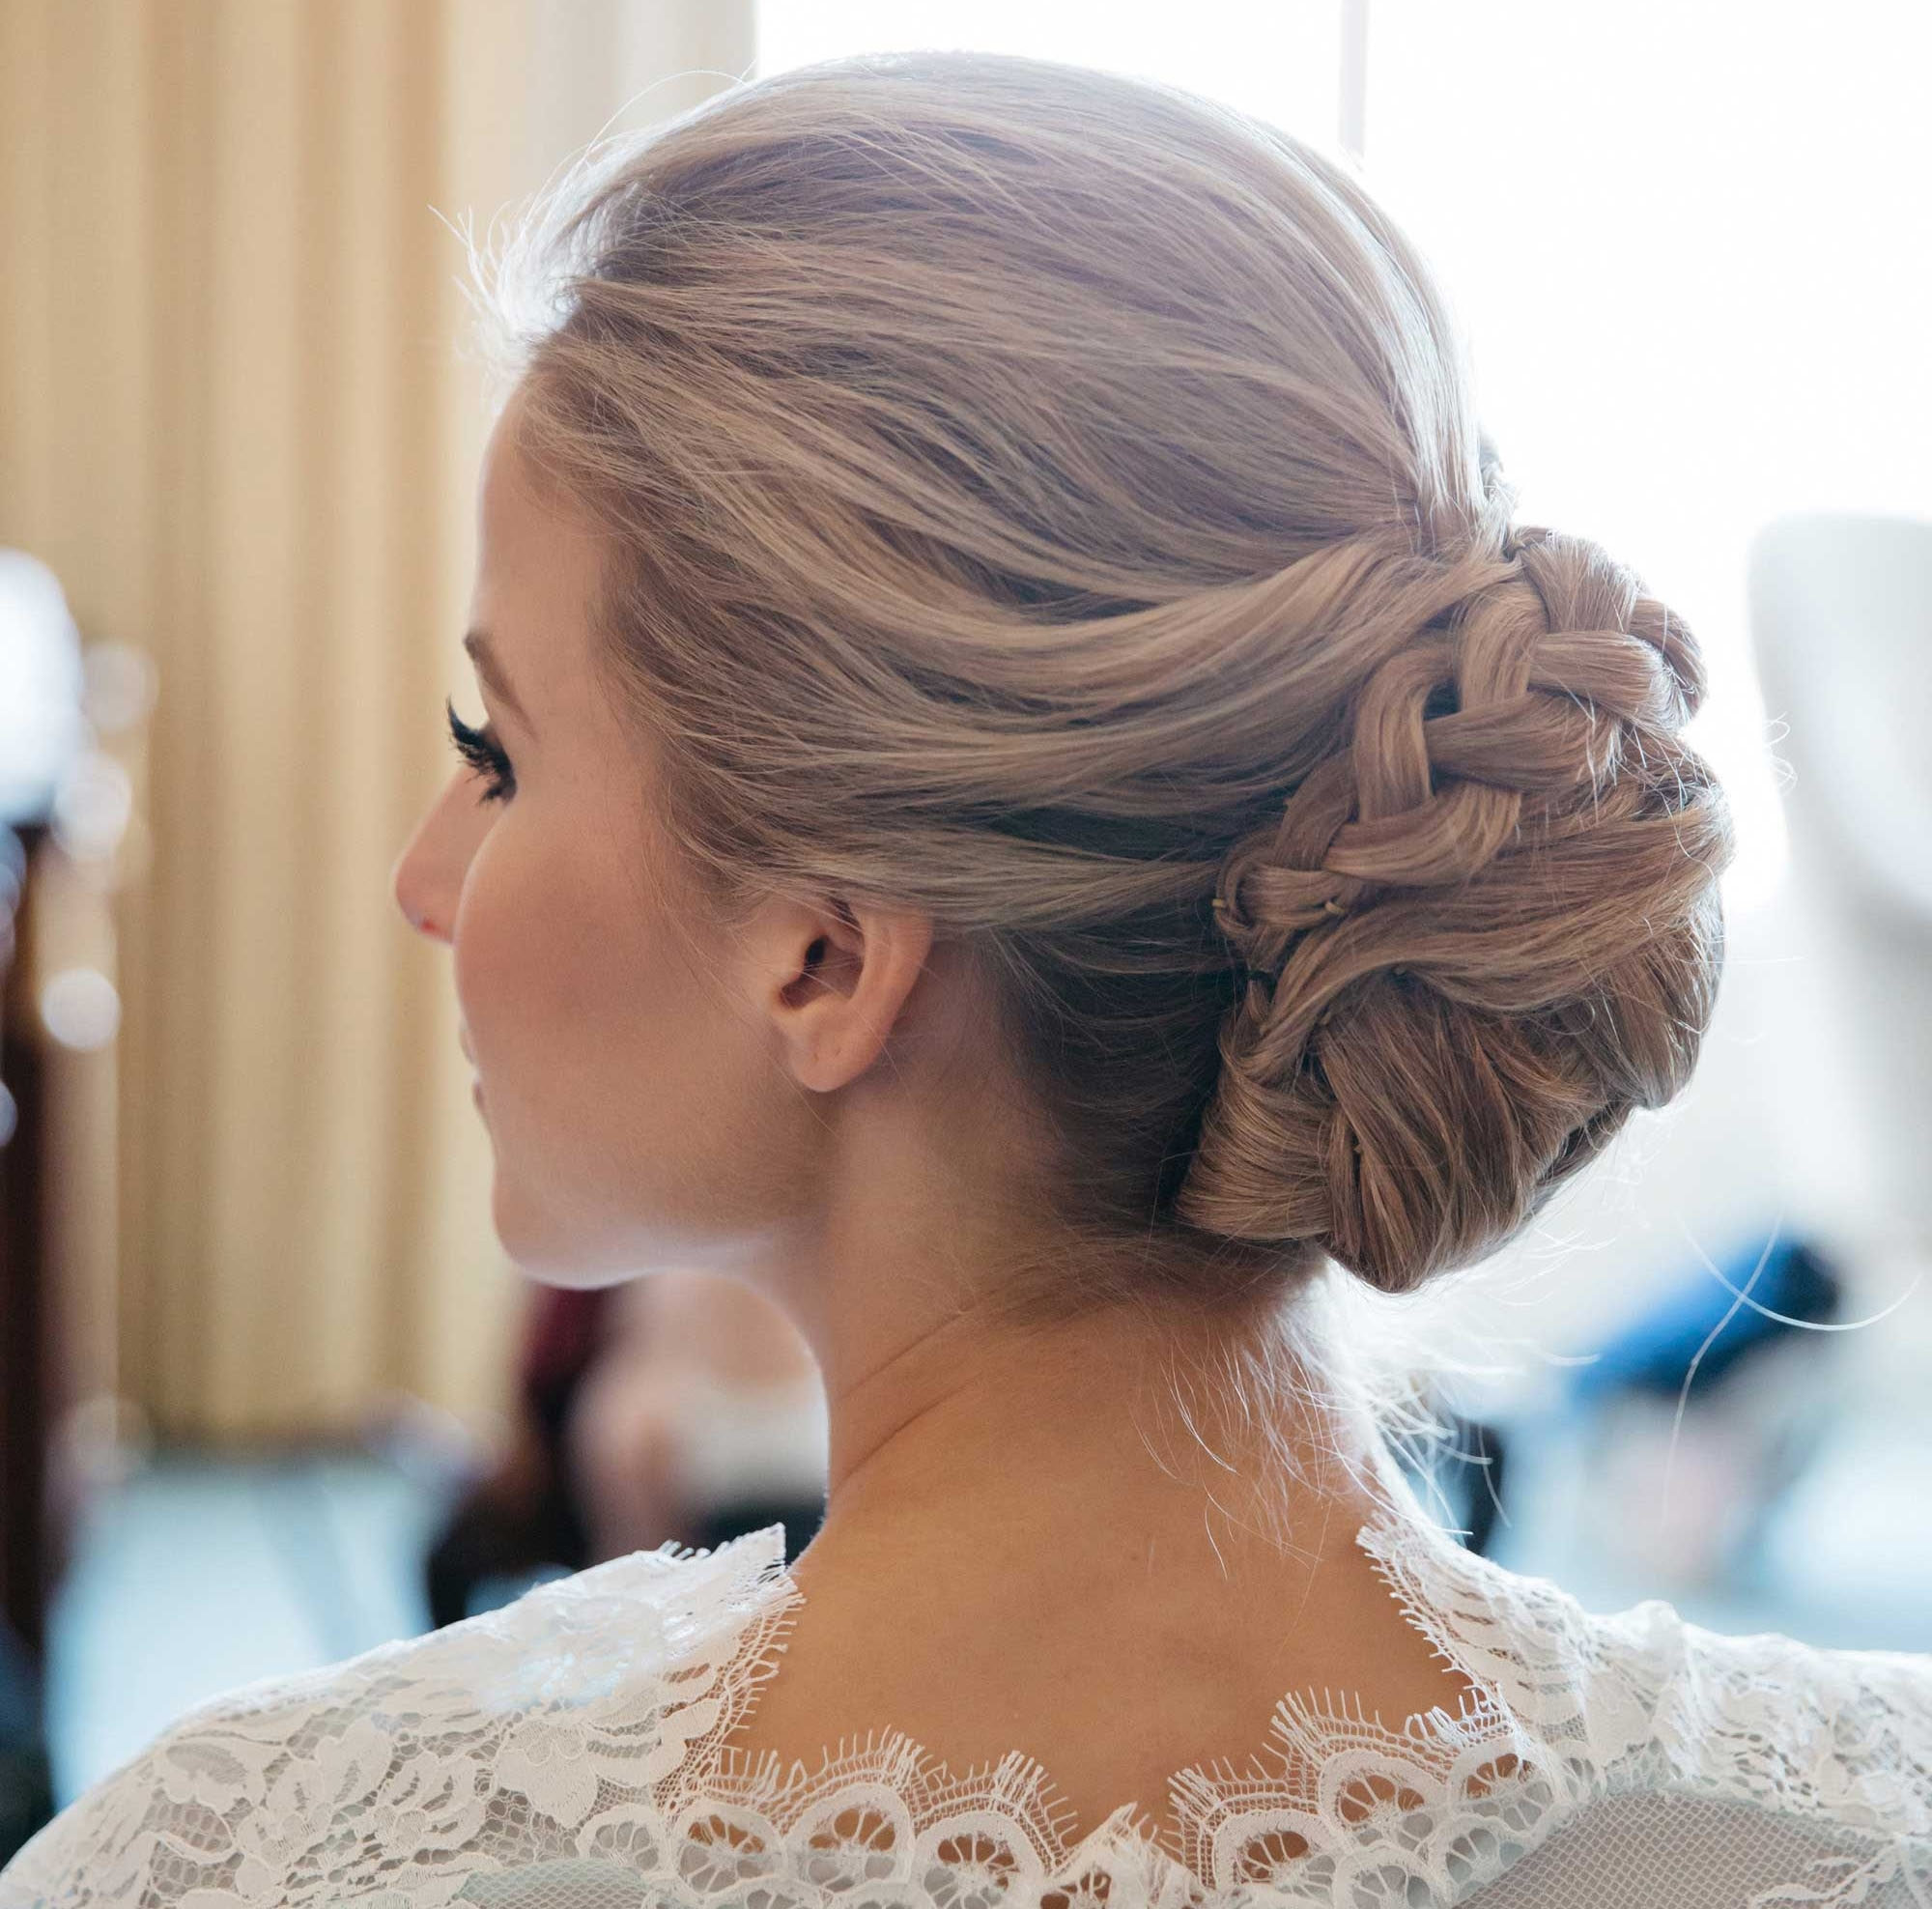 Prepossessing Half Chignon Hairstyle With Best Wedding Hairstyles Throughout Chignon Updo Hairstyles (View 13 of 15)